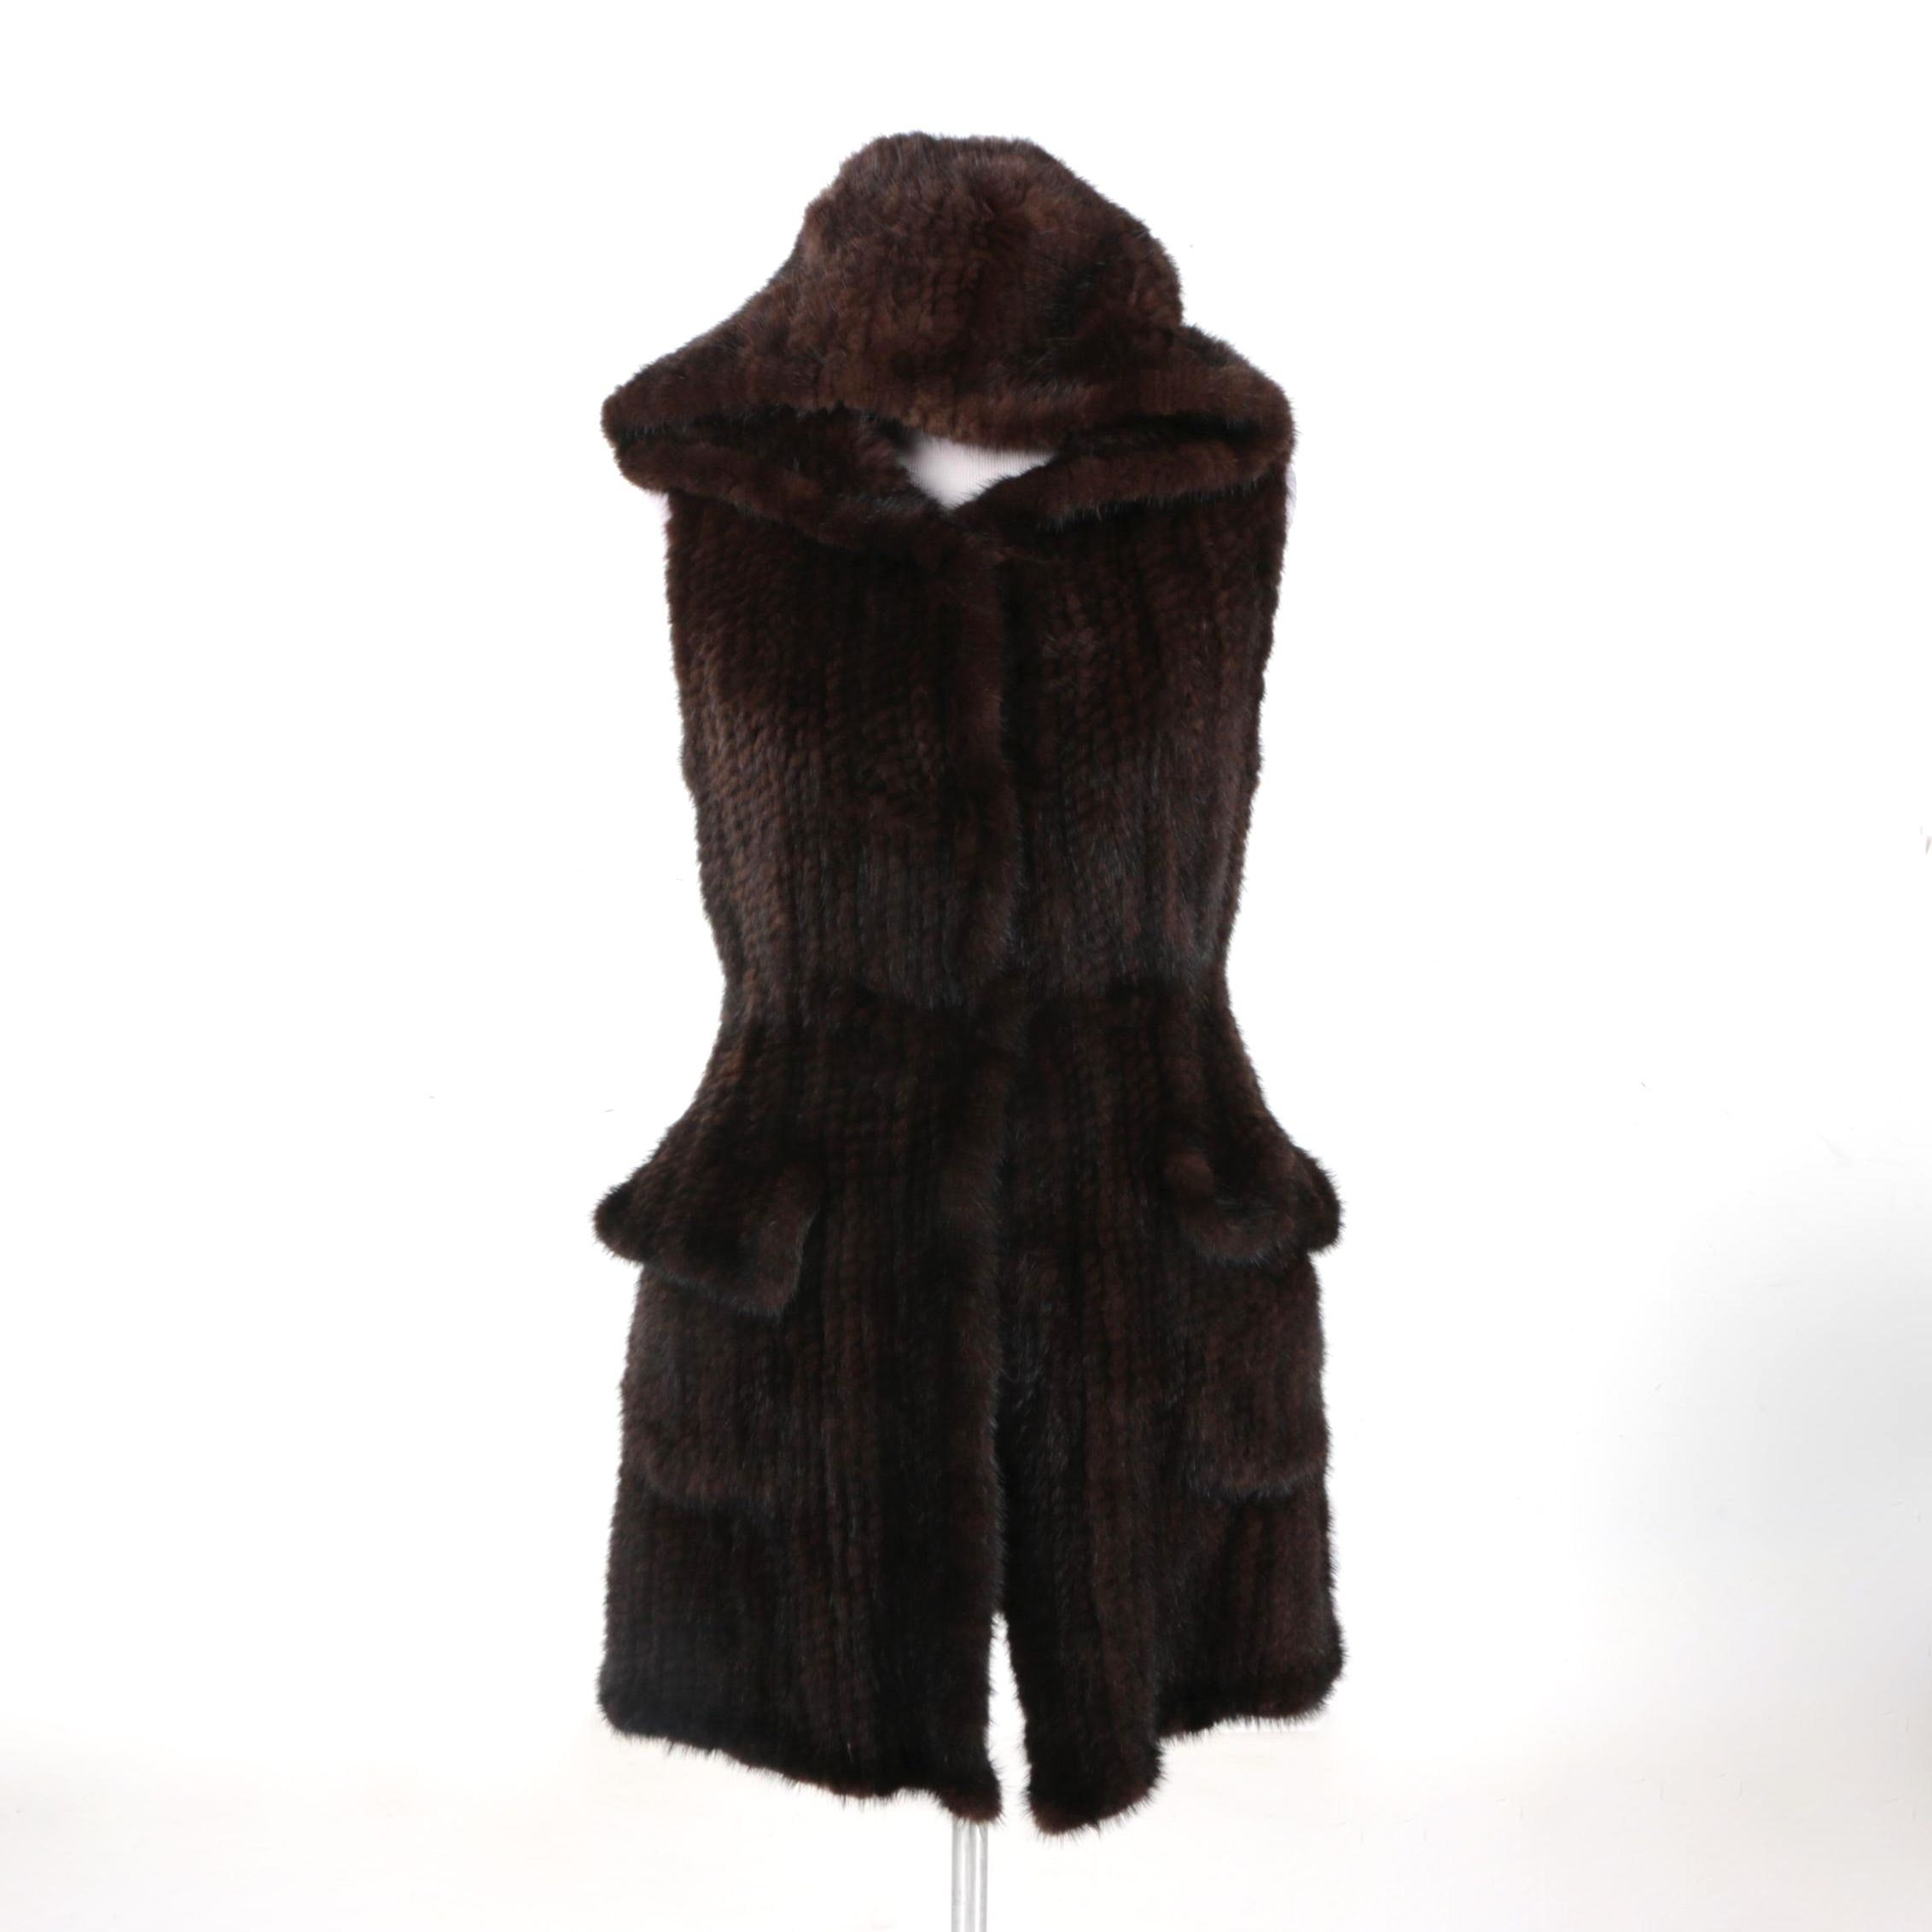 Janucci Women's Mink Full-Length Hooded Vest